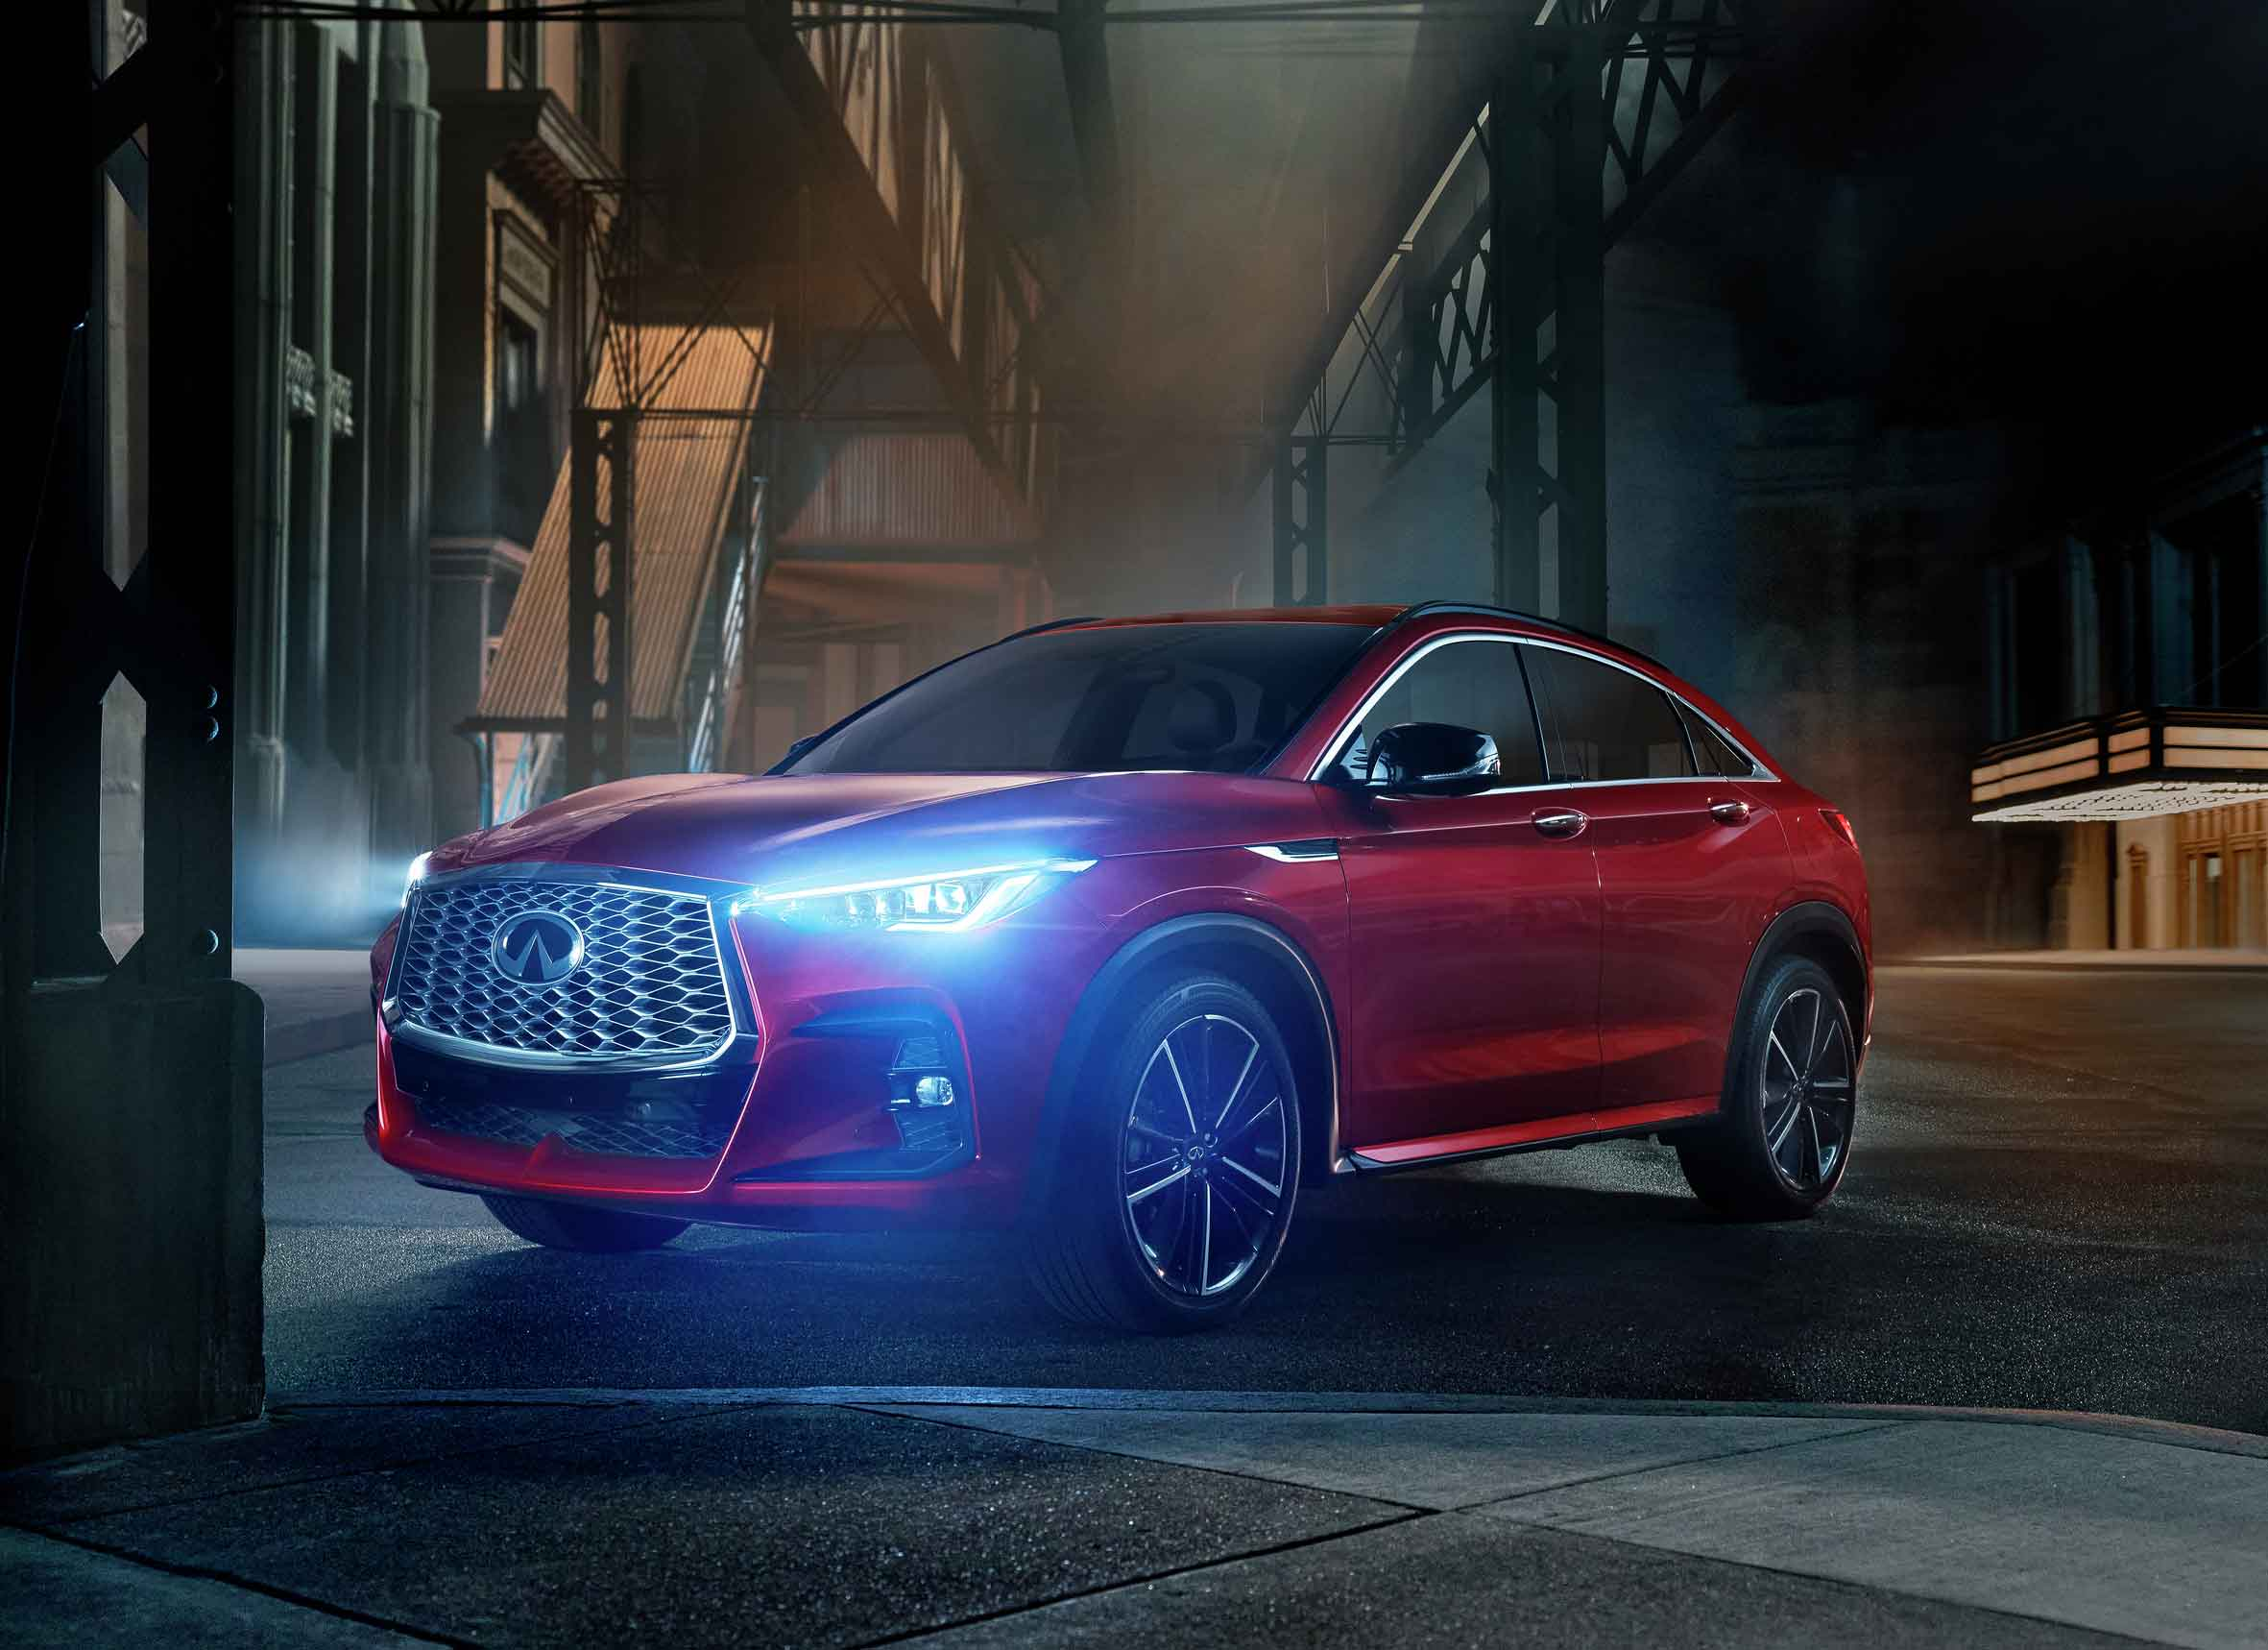 Show-stealing, all-new INFINITI QX55 debuts as next breakout performer for luxury brand